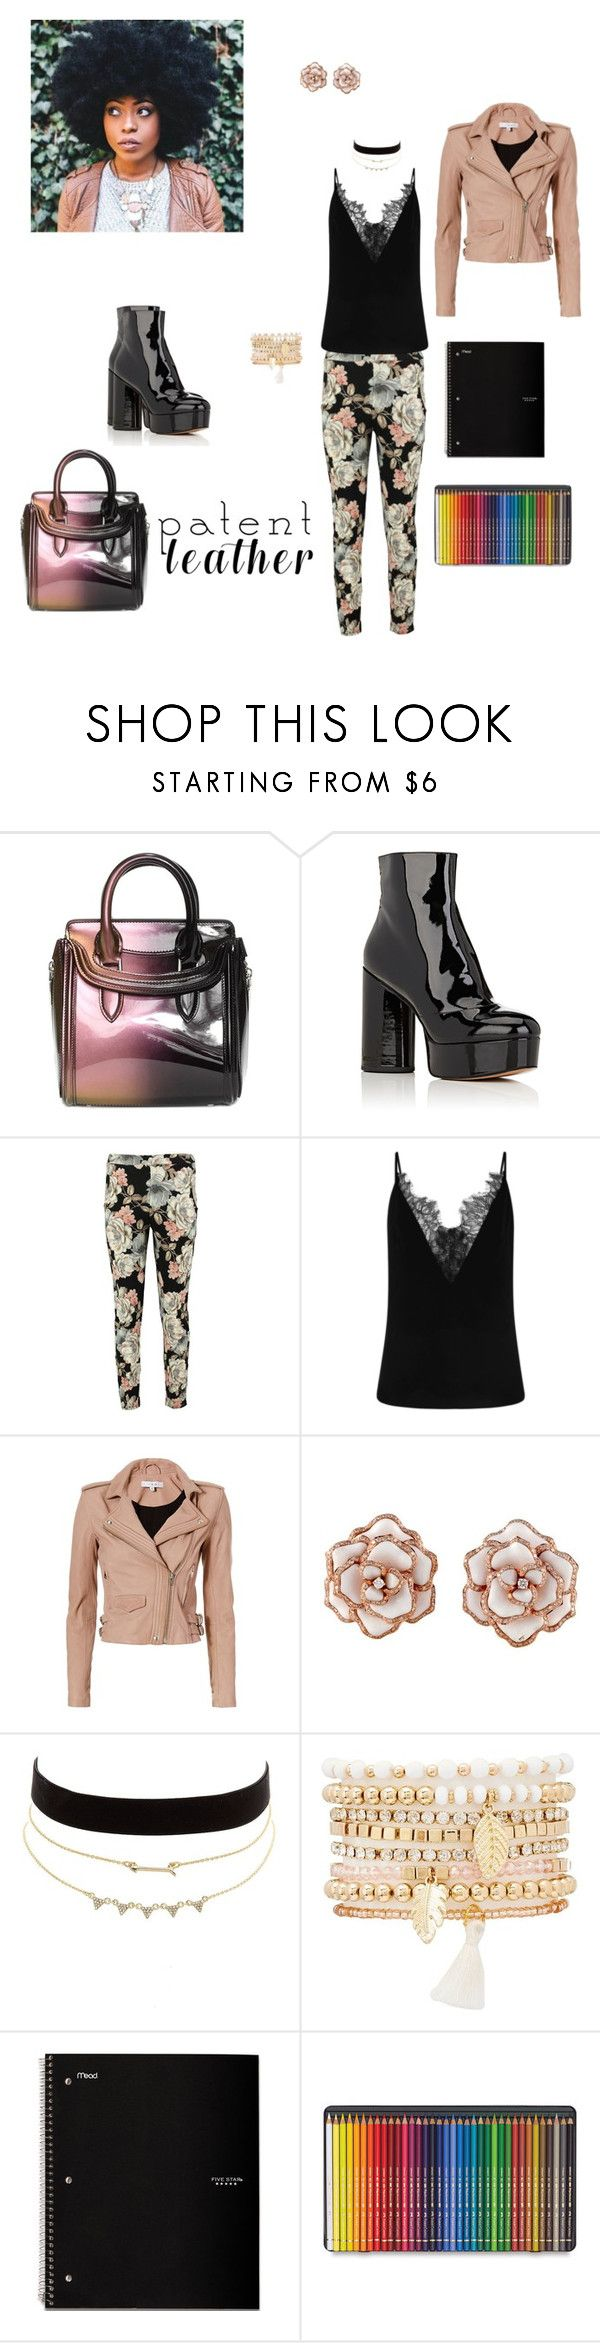 """Style of the Day: Patent Leather"" by mya-zari ❤ liked on Polyvore featuring Alexander McQueen, Marc Jacobs, Boohoo, IRO, Charlotte Russe and Faber-Castell"